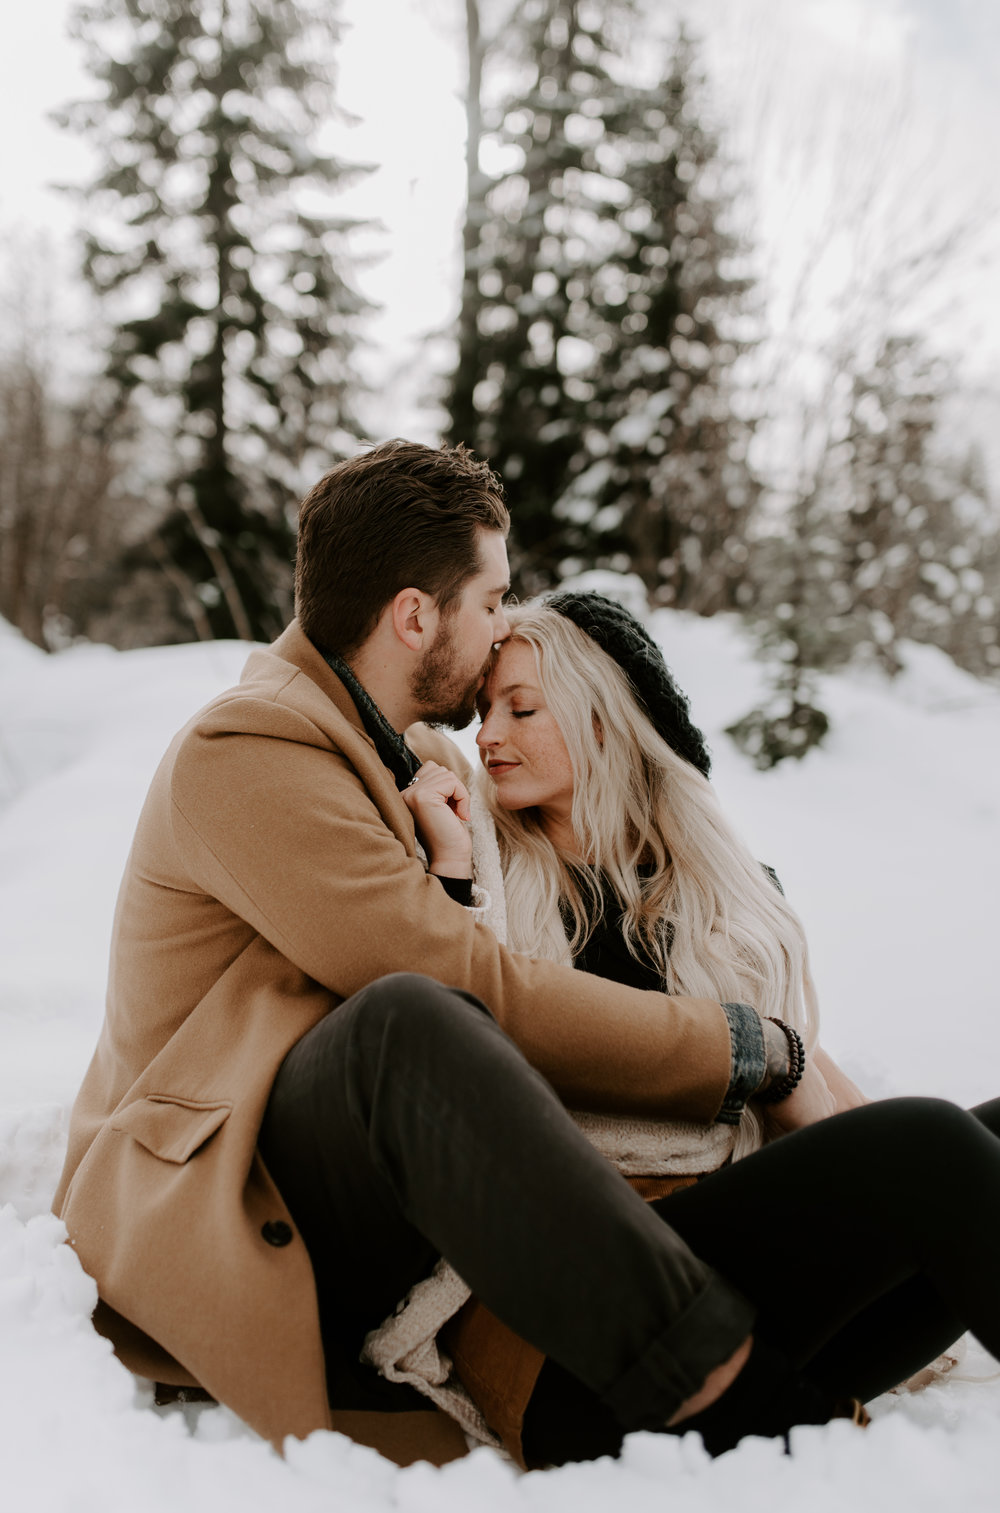 Washington photographer for engagement sessions in the North Cascades mountains.